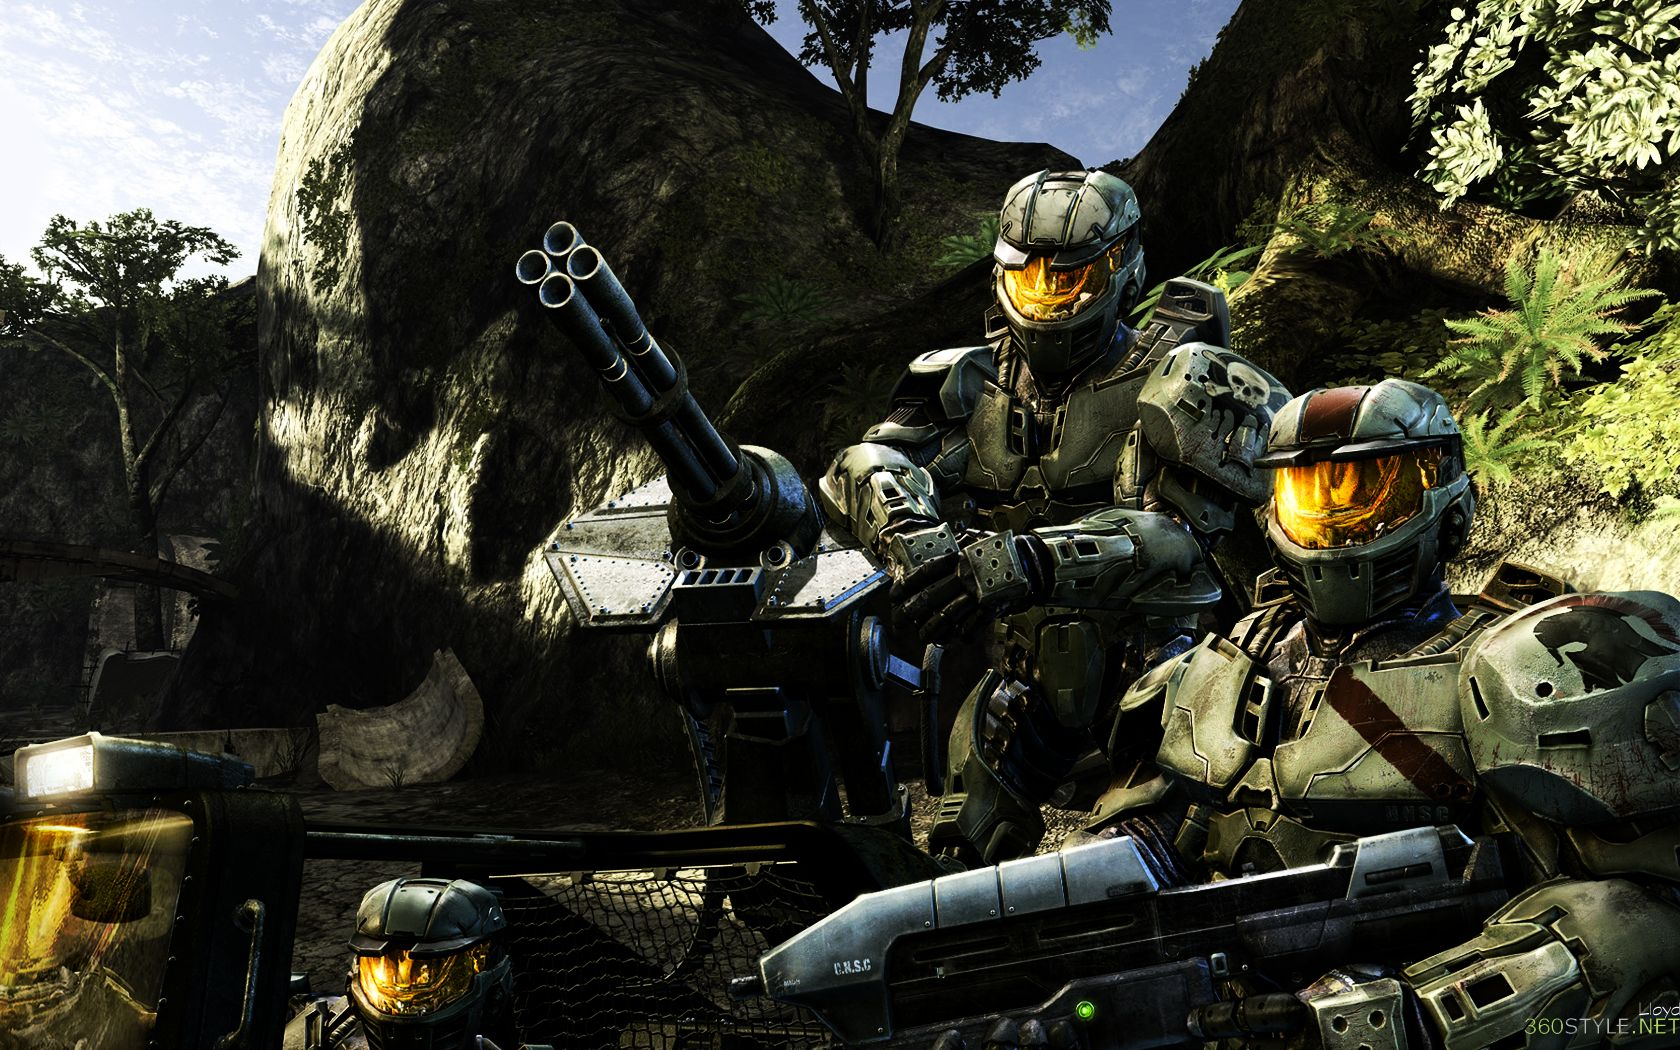 Halo Wars Wallpaper 2 By Igotgame1075 On Deviantart Wallpaper Backgrounds Art Halo Game